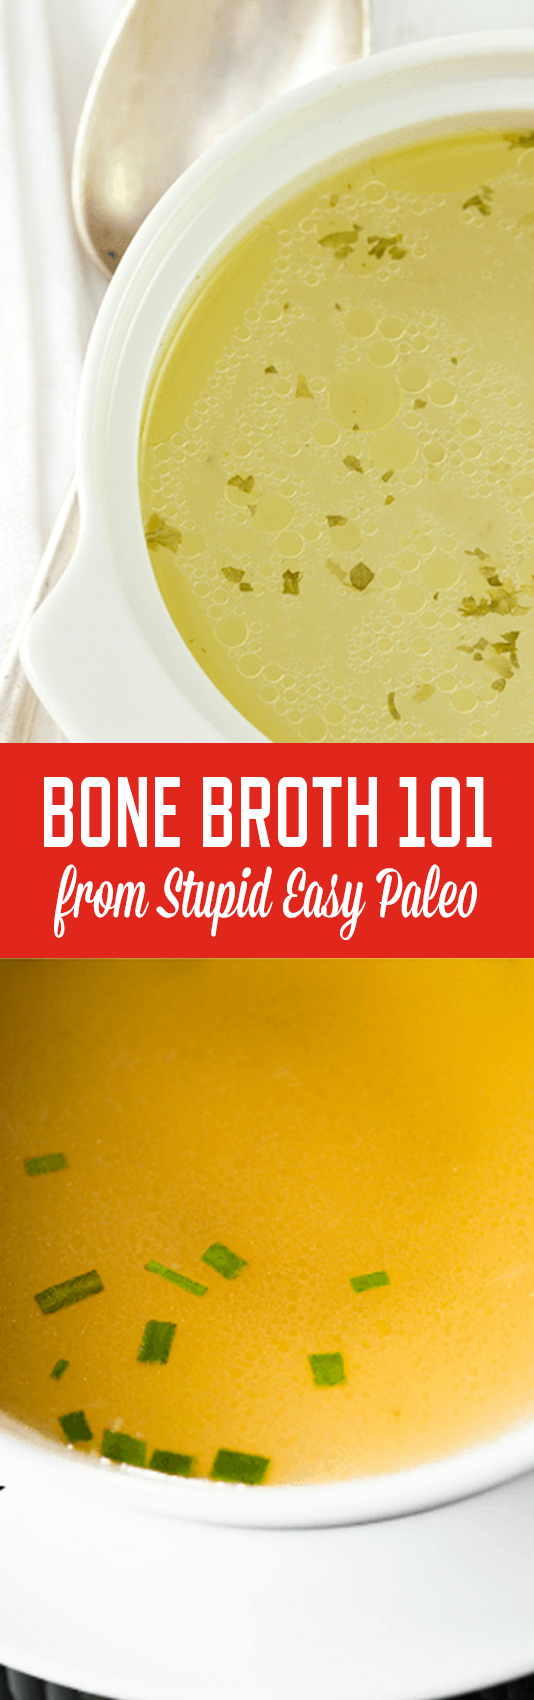 A tutorial for making the best bone broth, including a simple recipe. Click here to learn how to create excellent bone broth at home. | StupidEasyPaleo.com